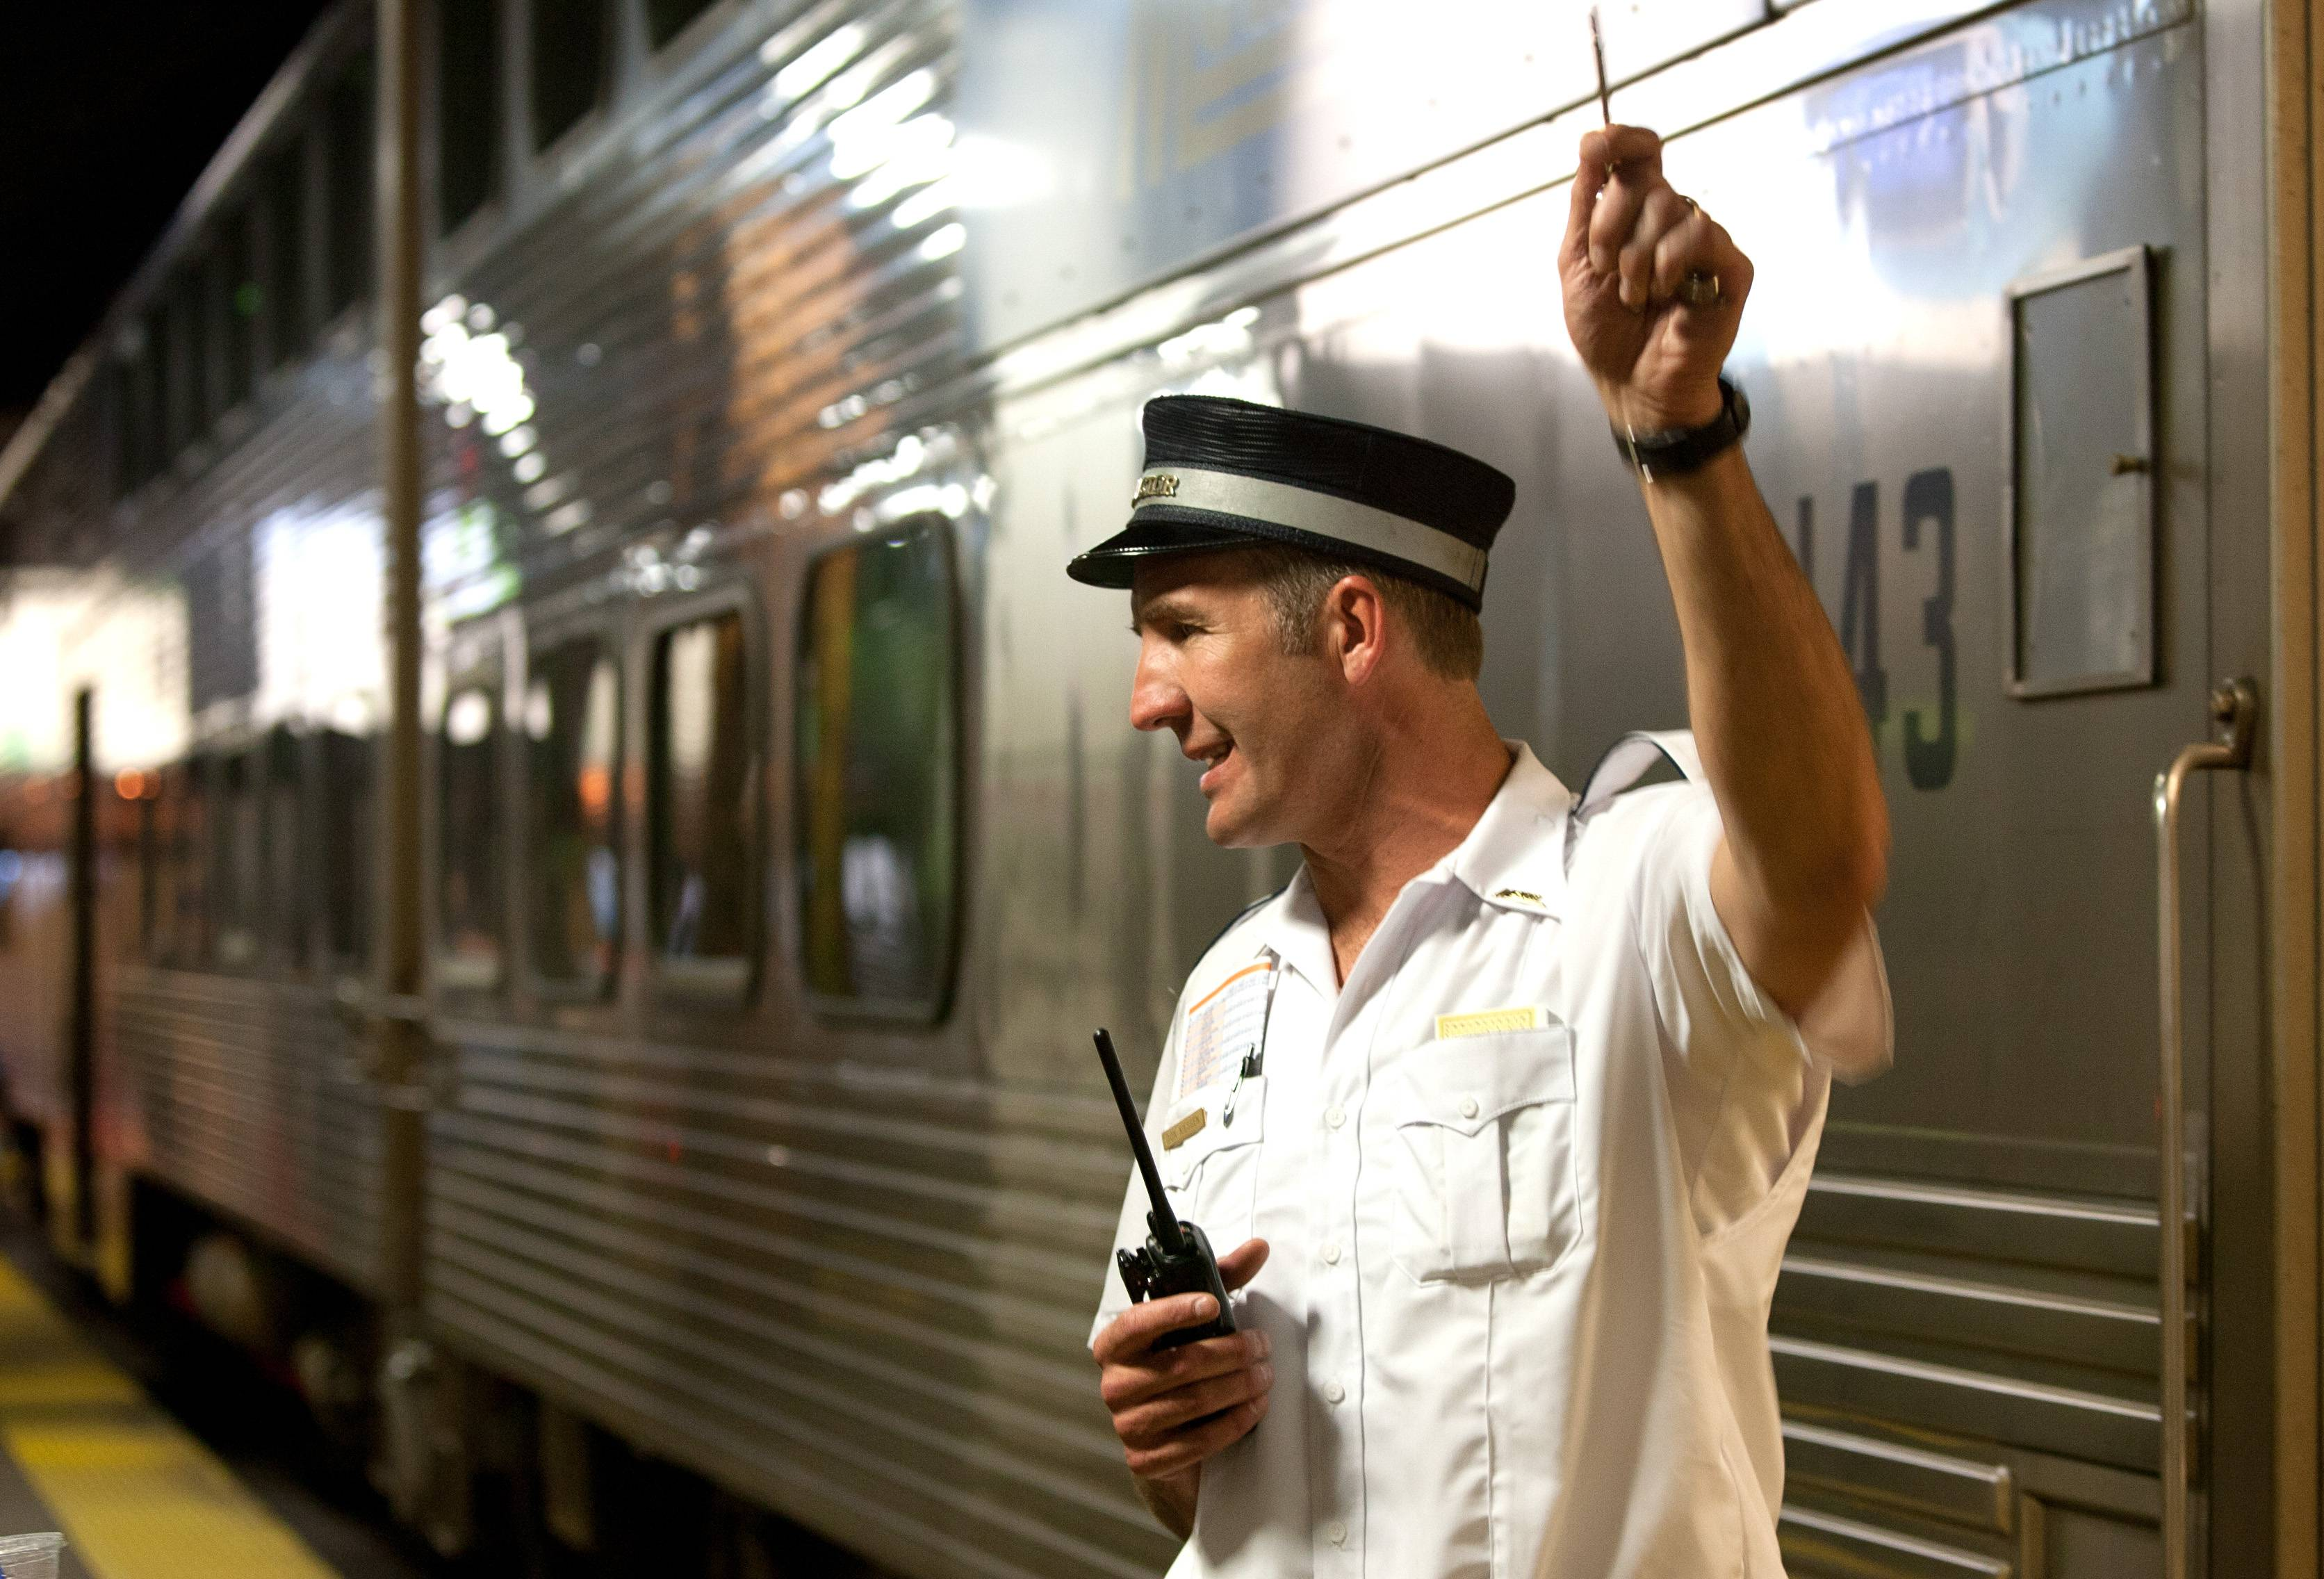 Don Kiesgen, a conductor on the Metra Milwaukee North Line, prepares to leave Union Station.